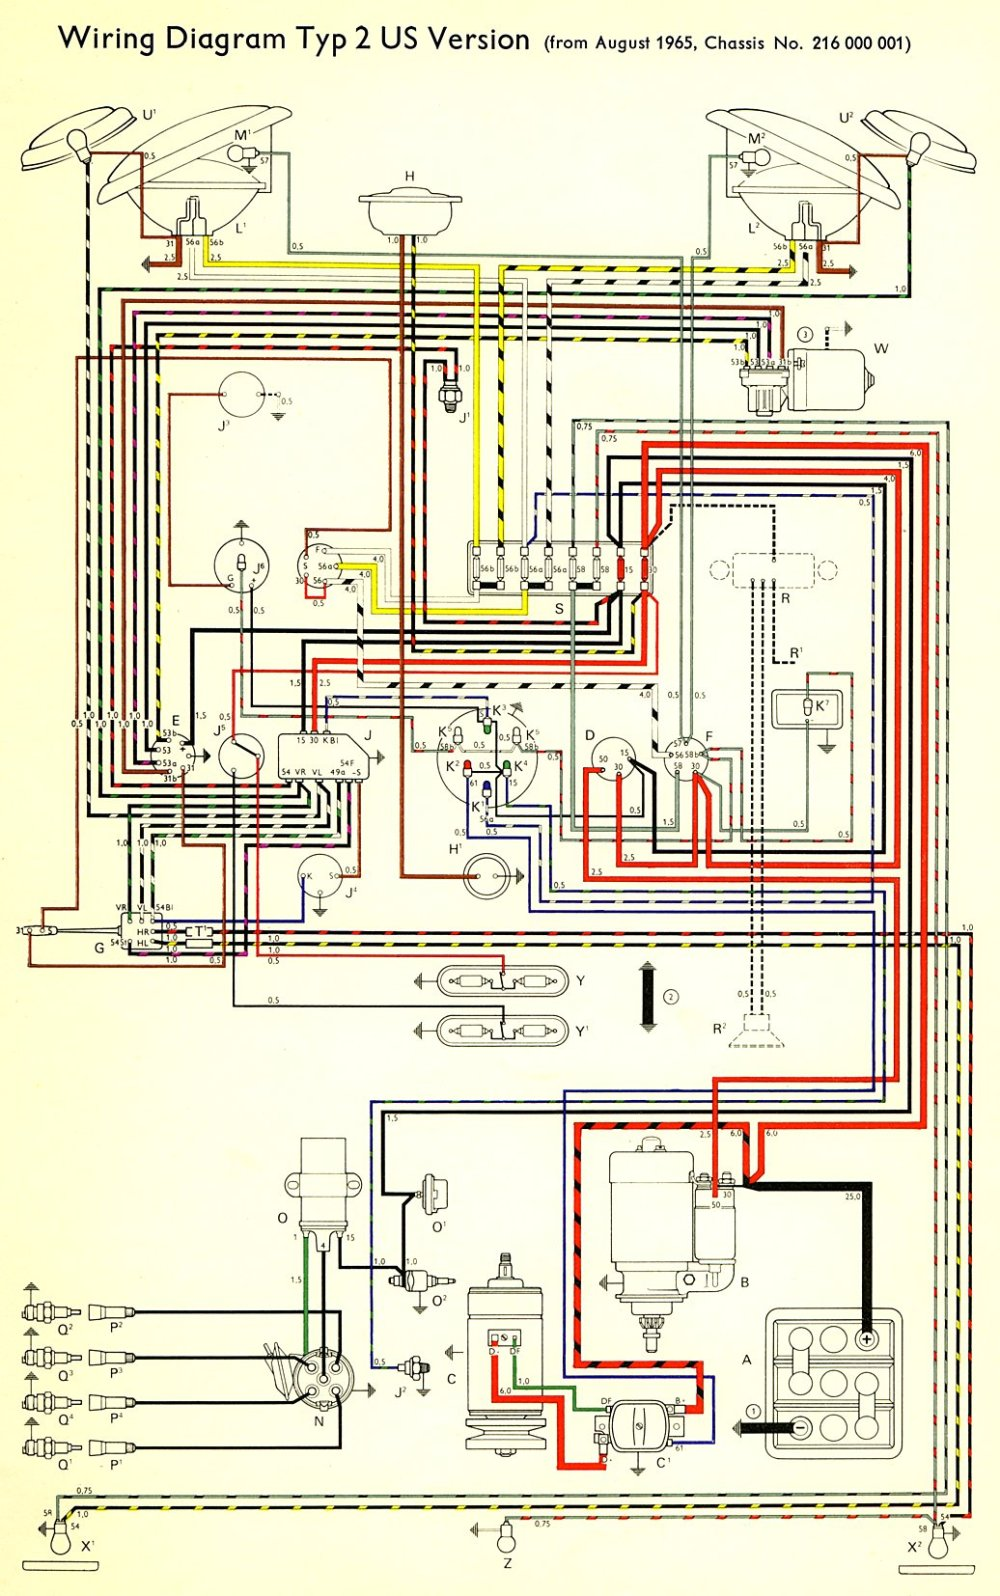 medium resolution of 1966 bus wiring diagram usa thegoldenbug com rh thegoldenbug com vw bus engine diagram 1969 vw